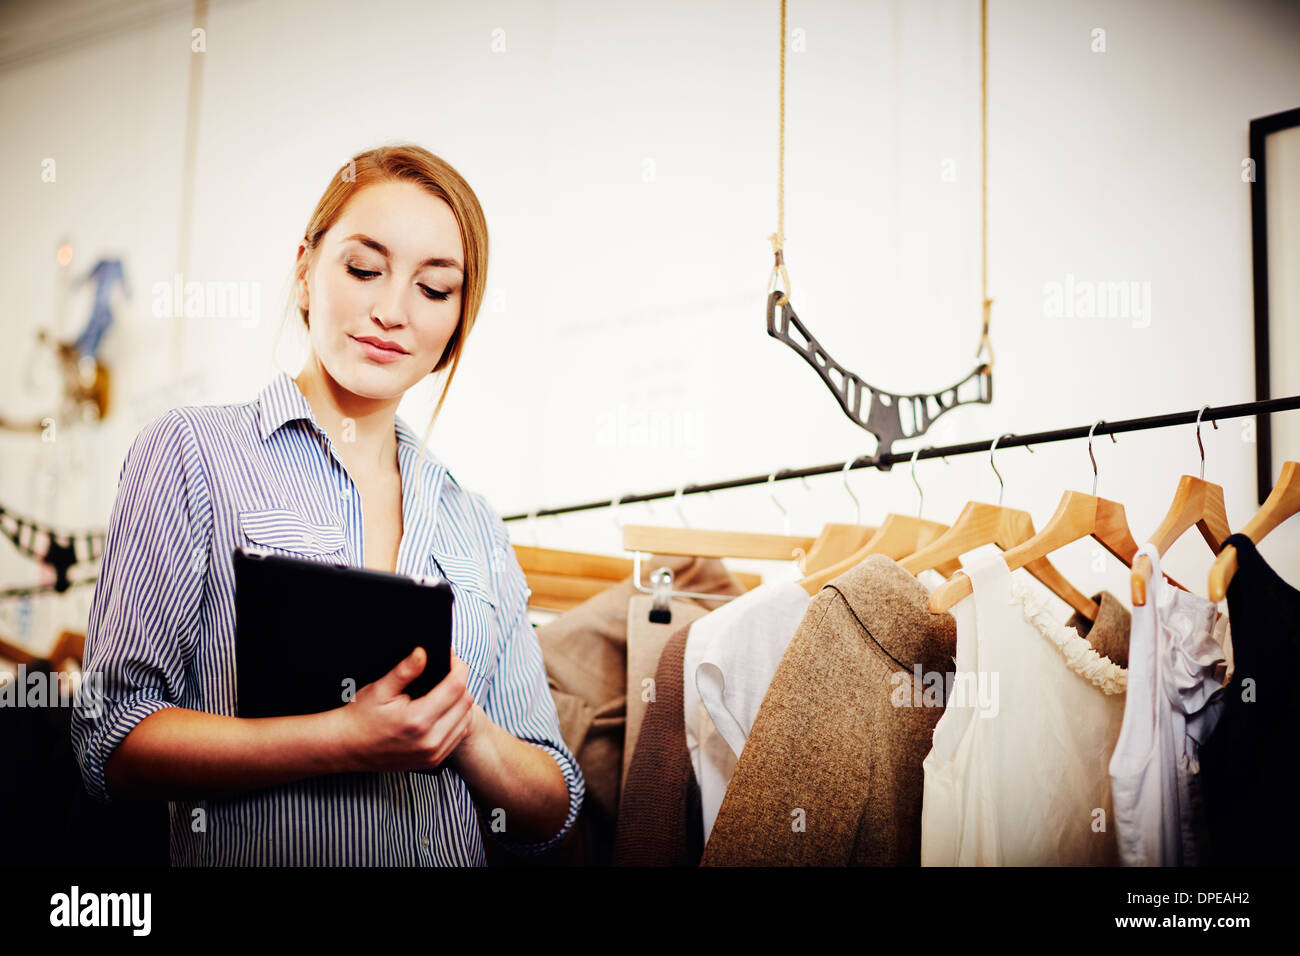 Shop keeper doing stock check using digital tablet - Stock Image